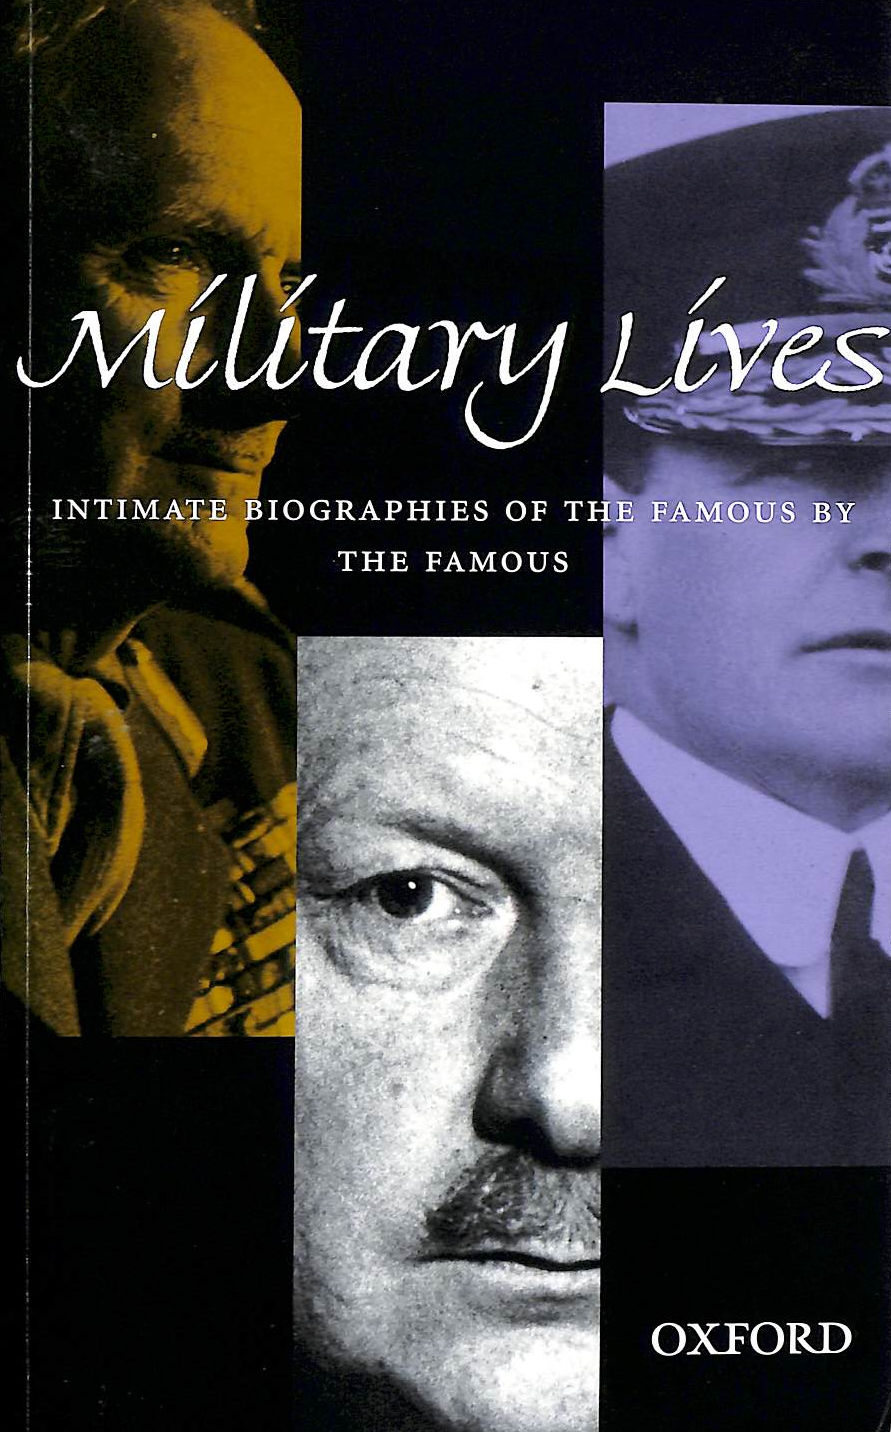 Image for Military Lives: Intimate Biographies of the Famous by the Famous